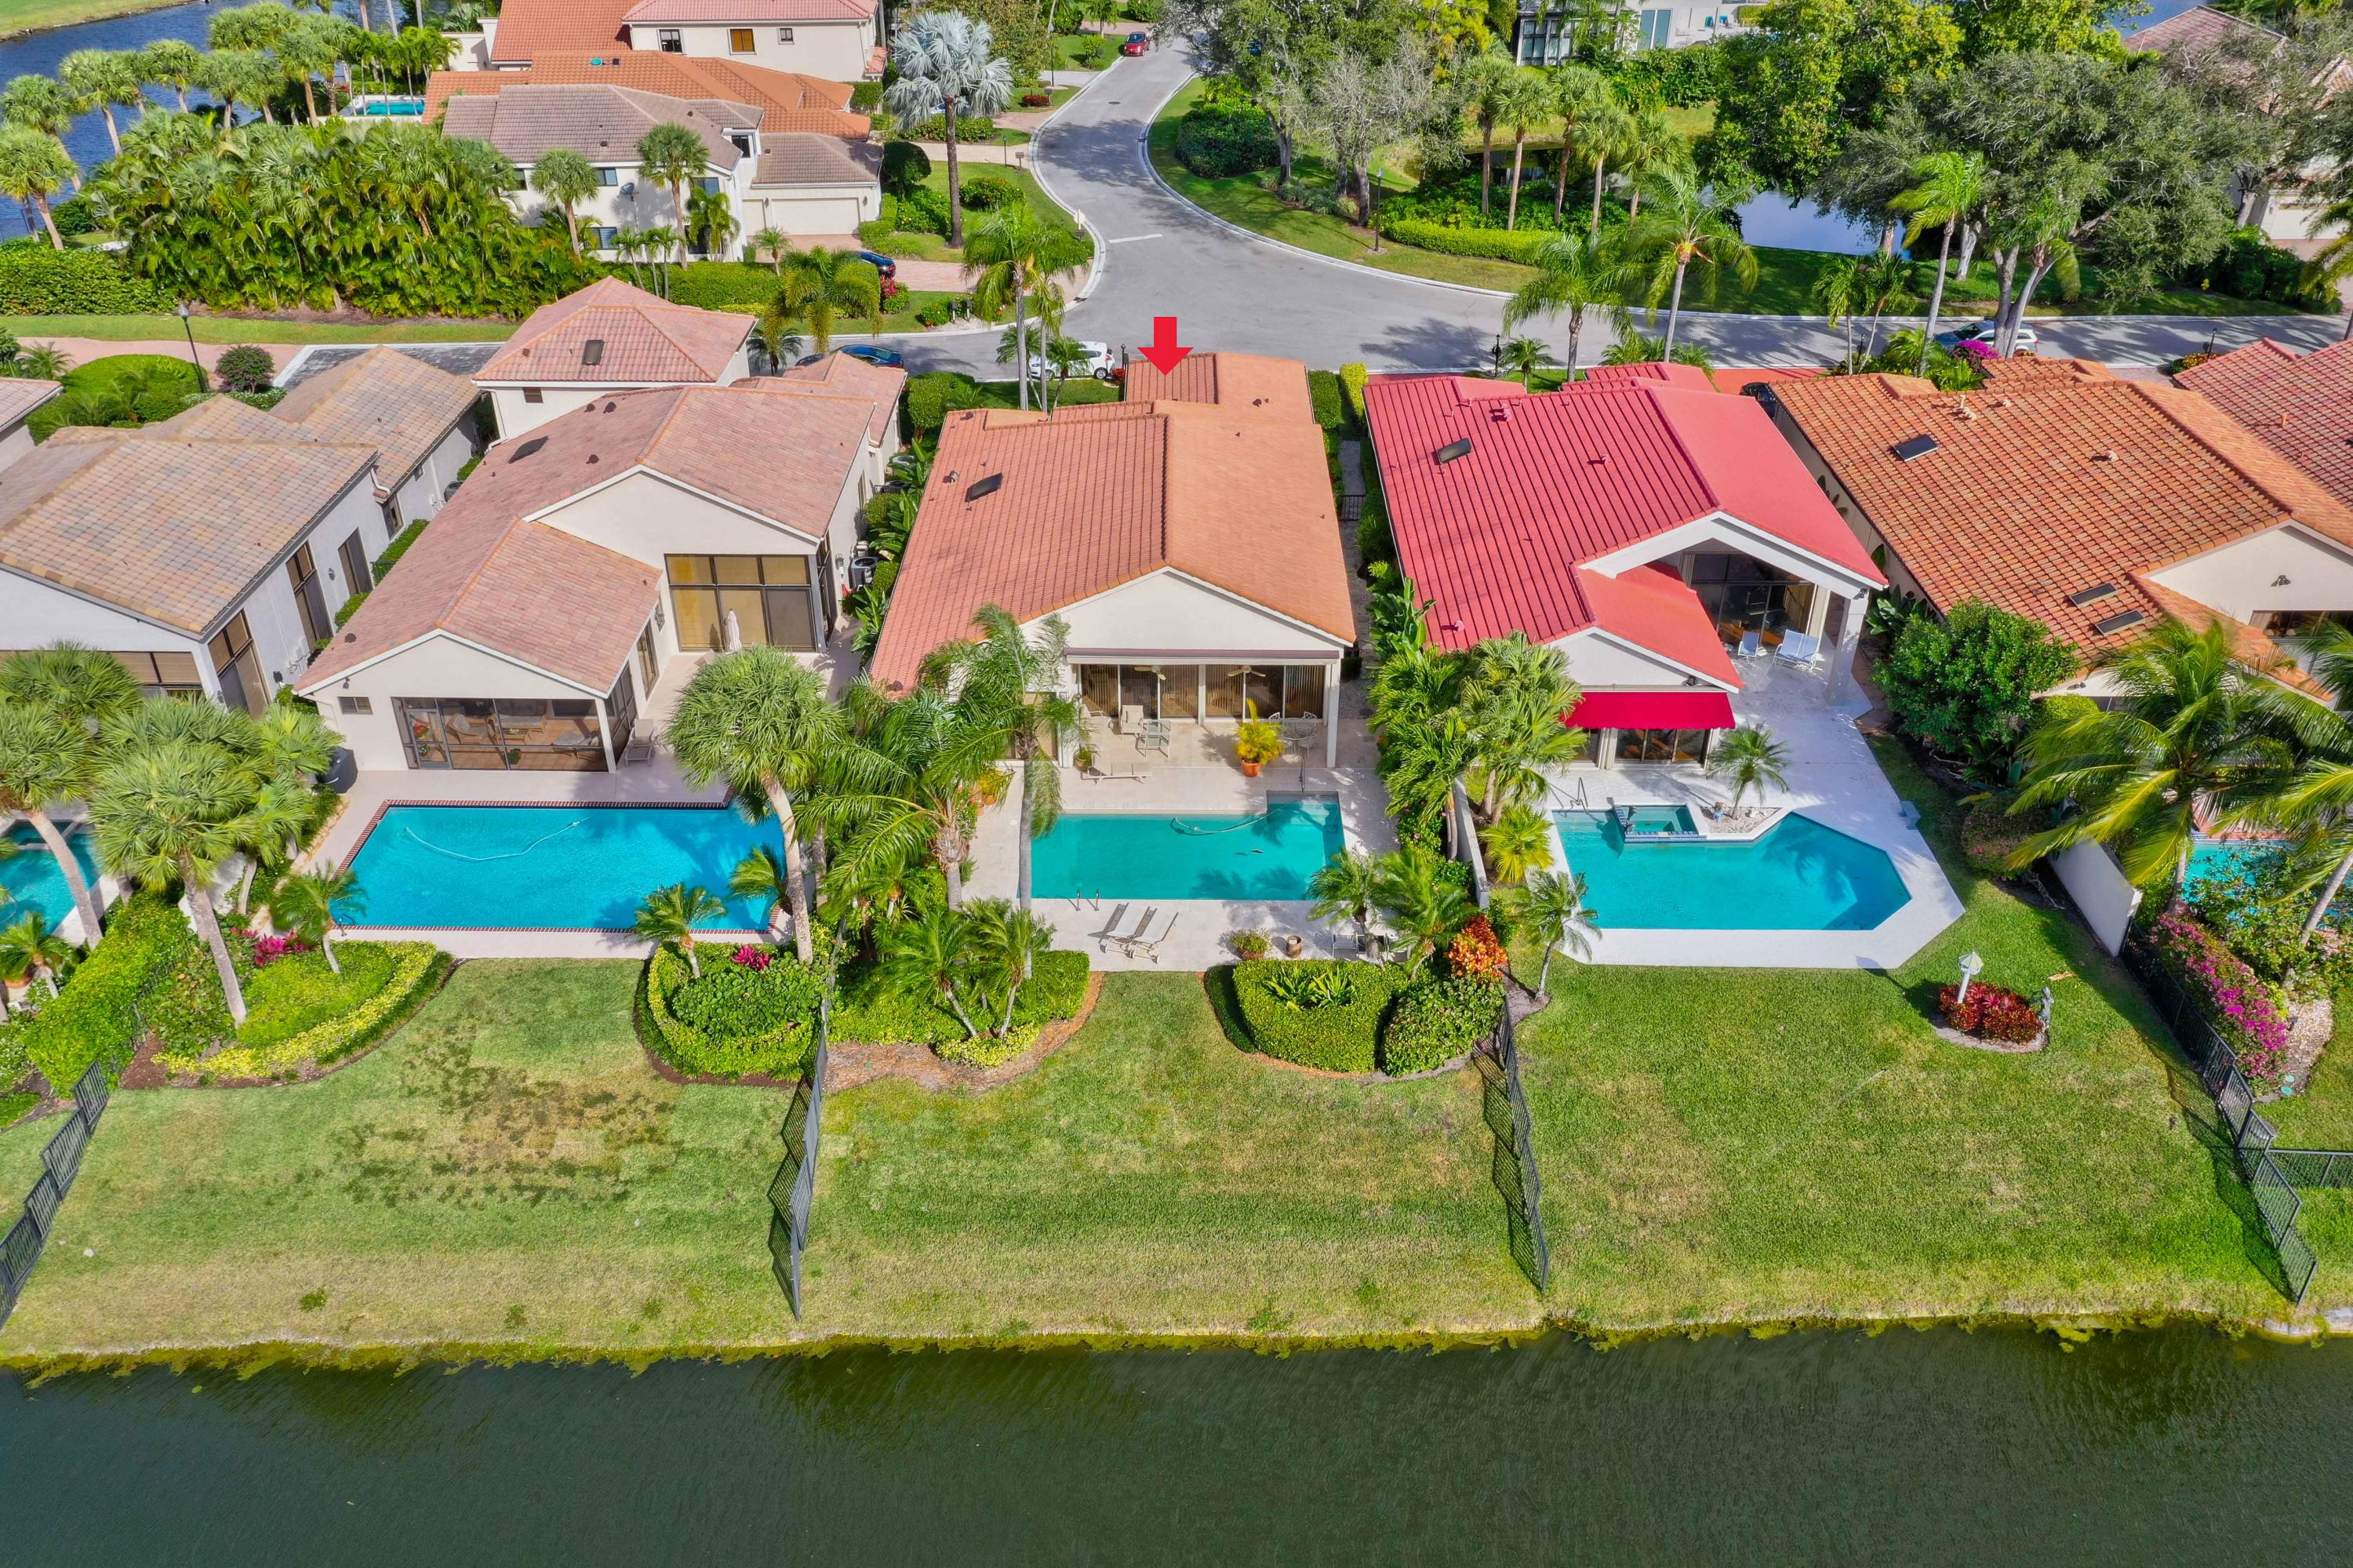 FRENCHMANS CREEK REALTY